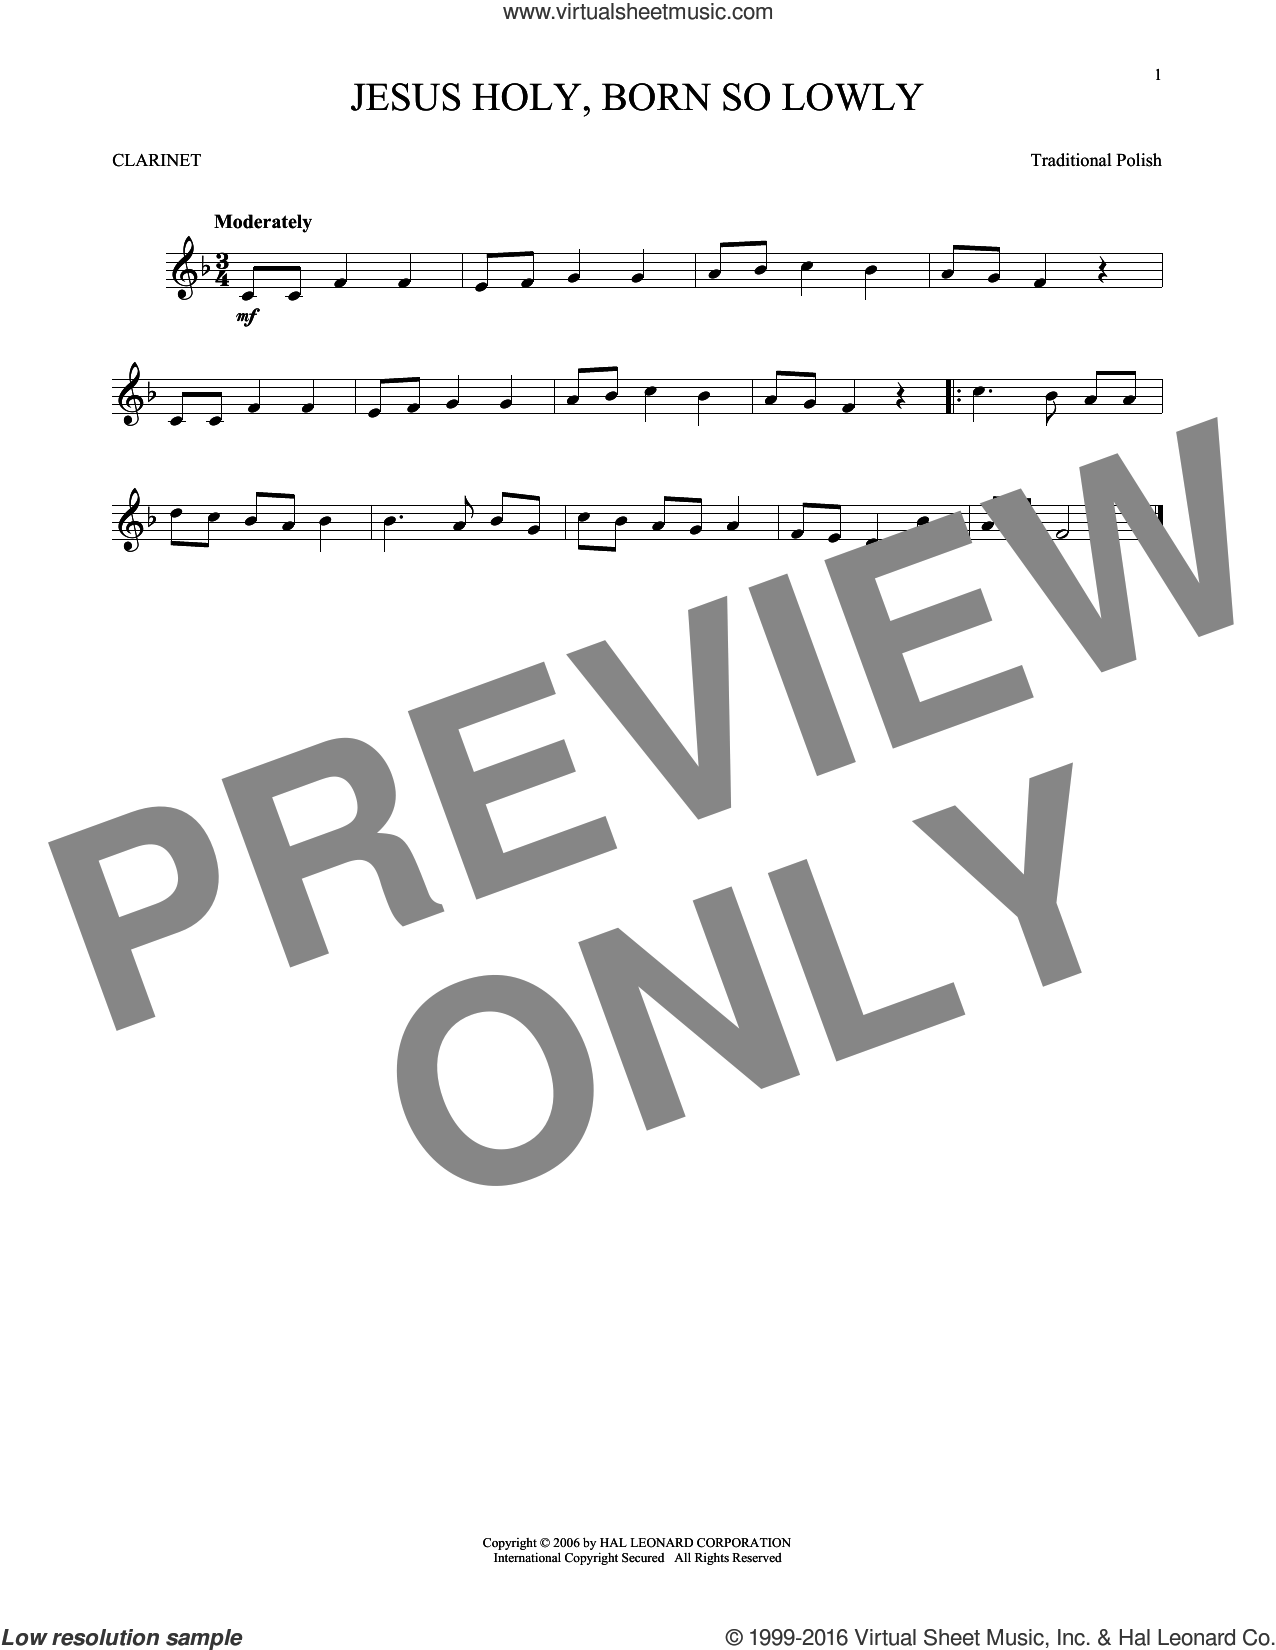 Jesus Holy, Born So Lowly sheet music for clarinet solo, intermediate skill level